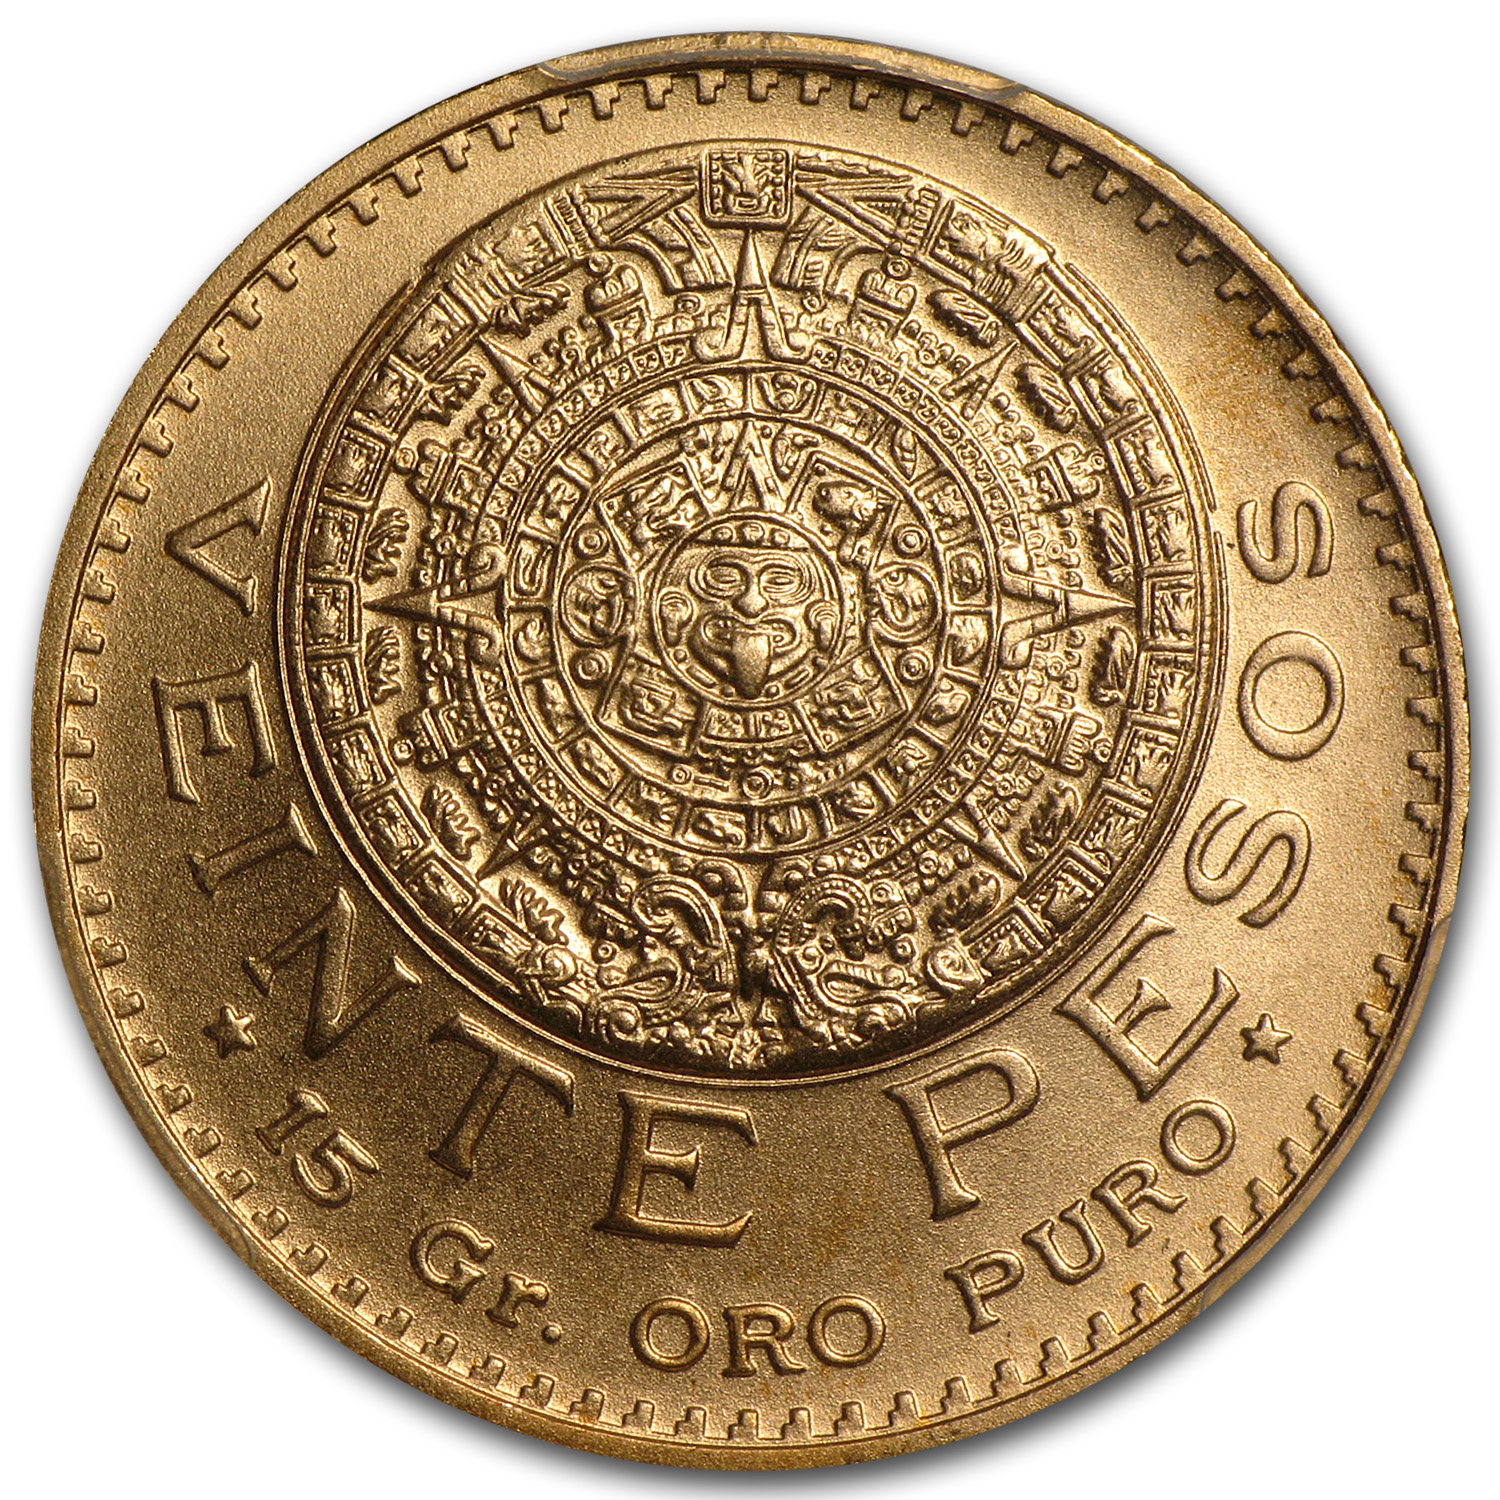 Mexico 1959 20 Pesos Gold Coin - MS-70 PCGS (Restrike)